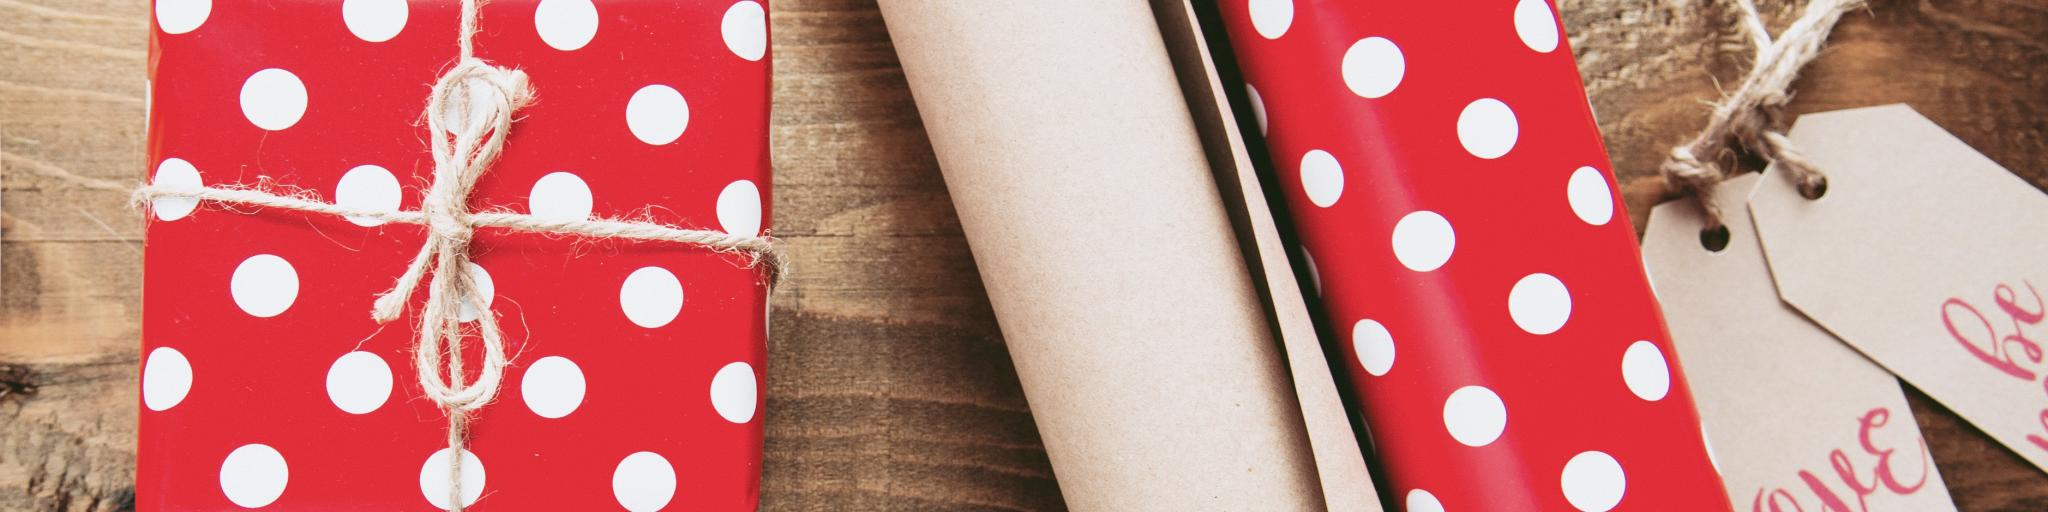 Red and white polka dot wrapping paper with a string bow and two rolls of wrapping paper - one polka dot, one brown parcel paper